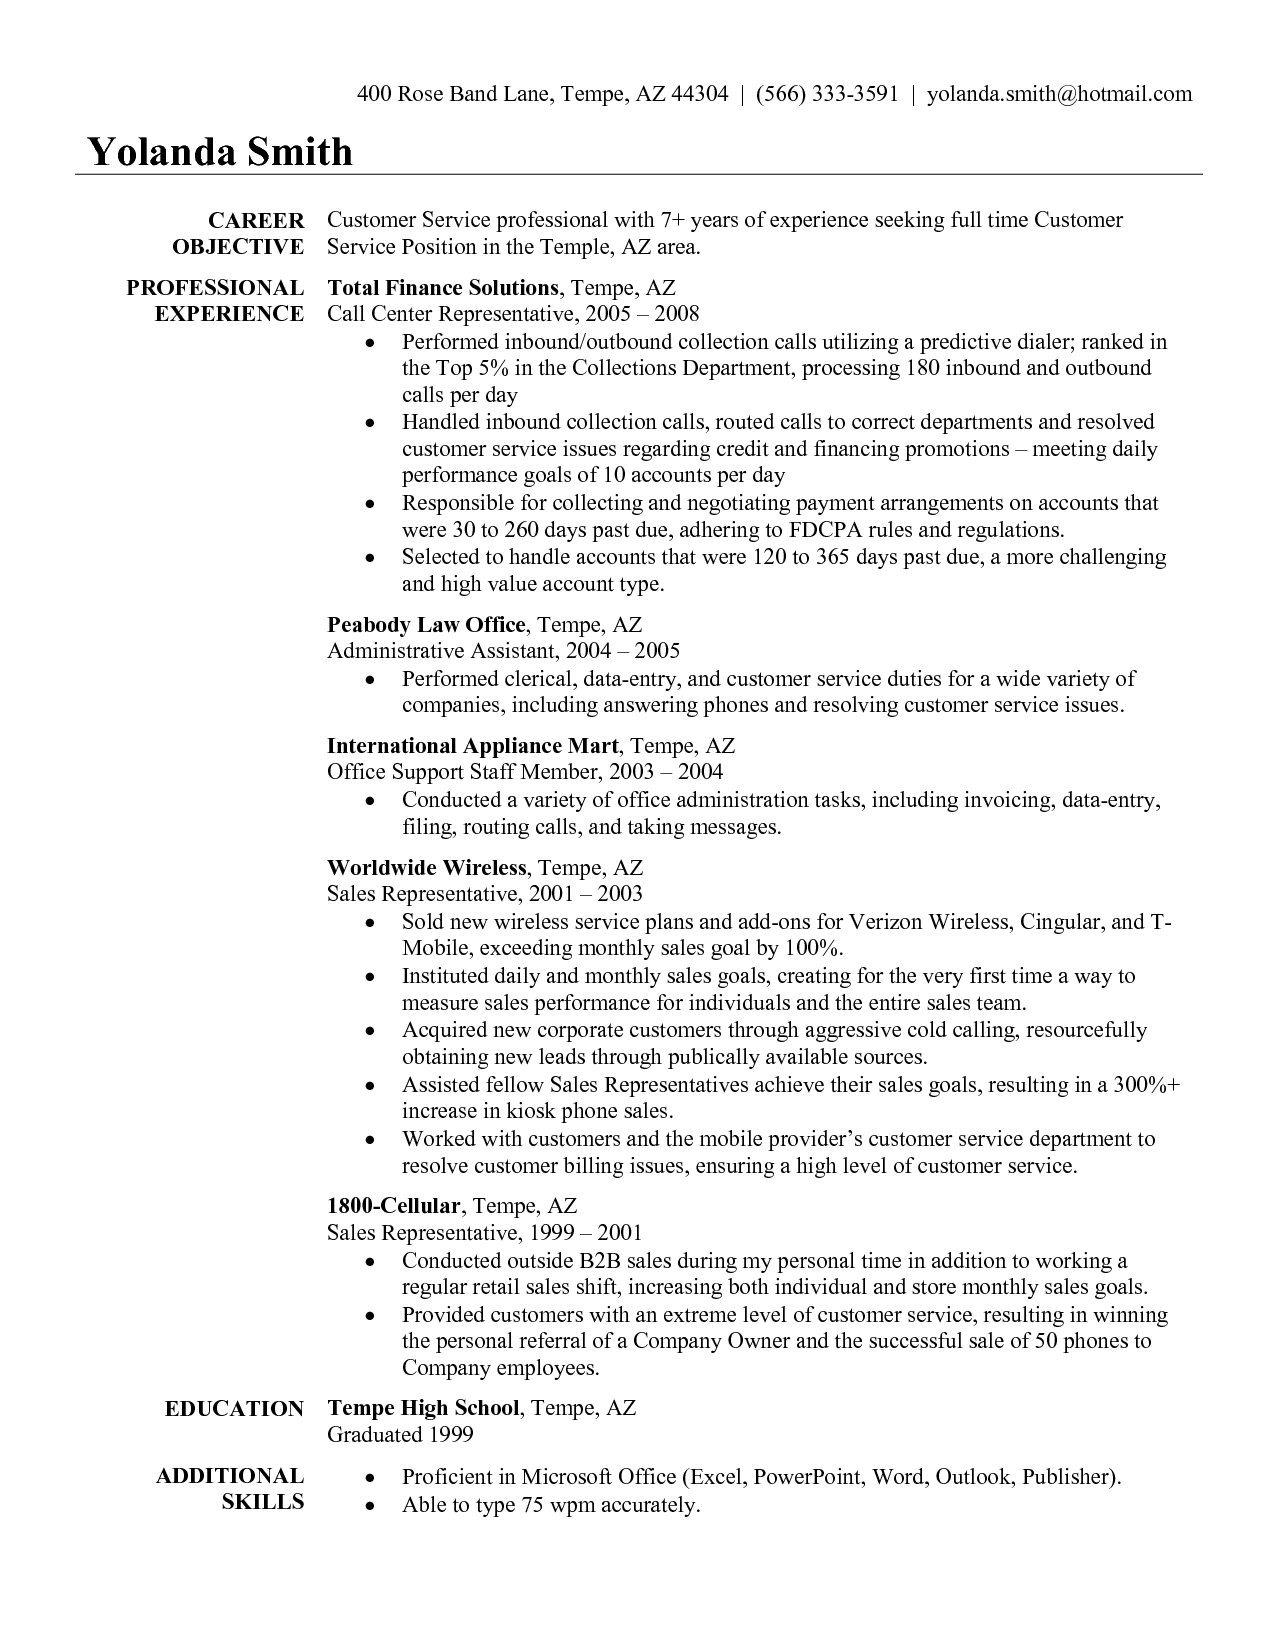 Resume For Customer Service Azwgtk - Resume-objective-examples-customer-service